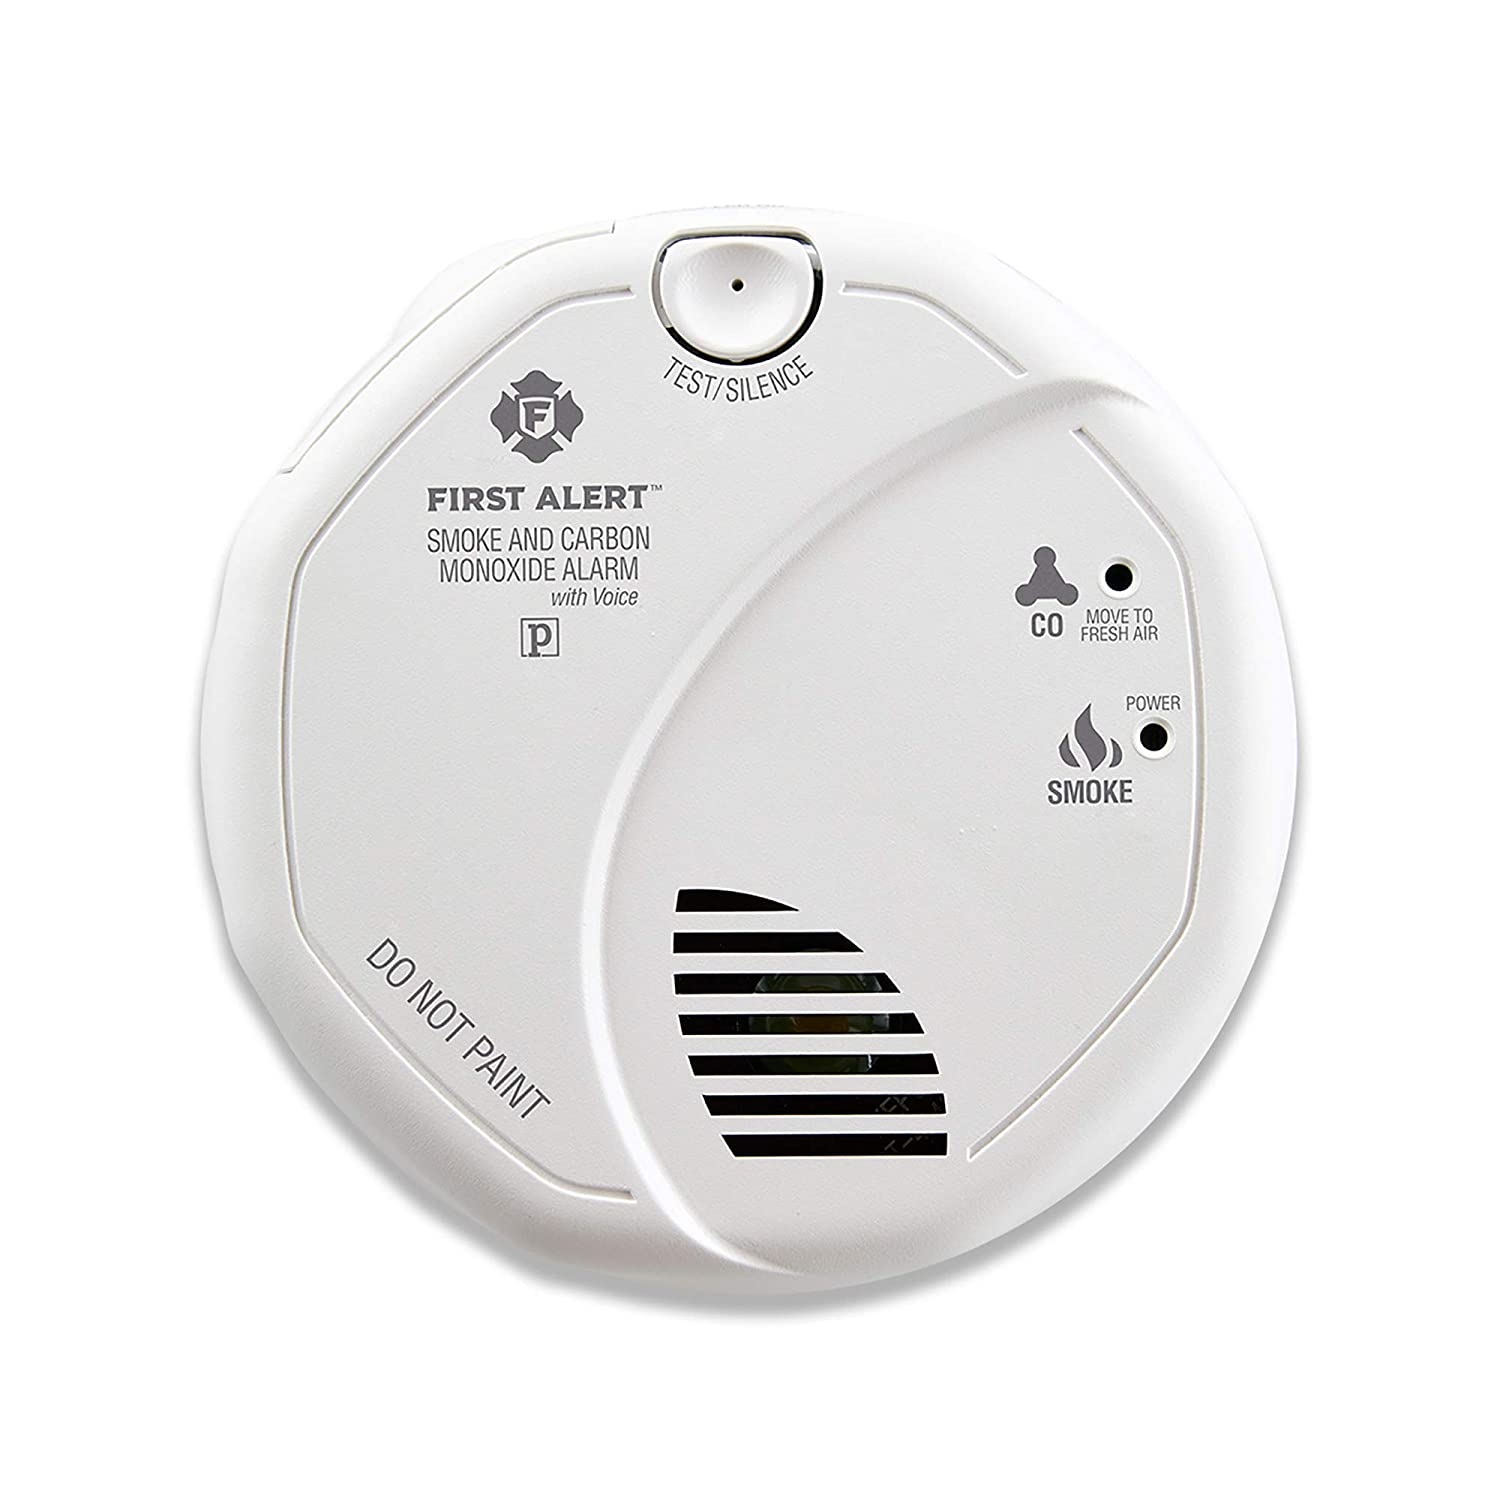 First Alert BRK SC7010BV Hardwired Talking Photoelectric Smoke and Carbon Monoxide CO Detector